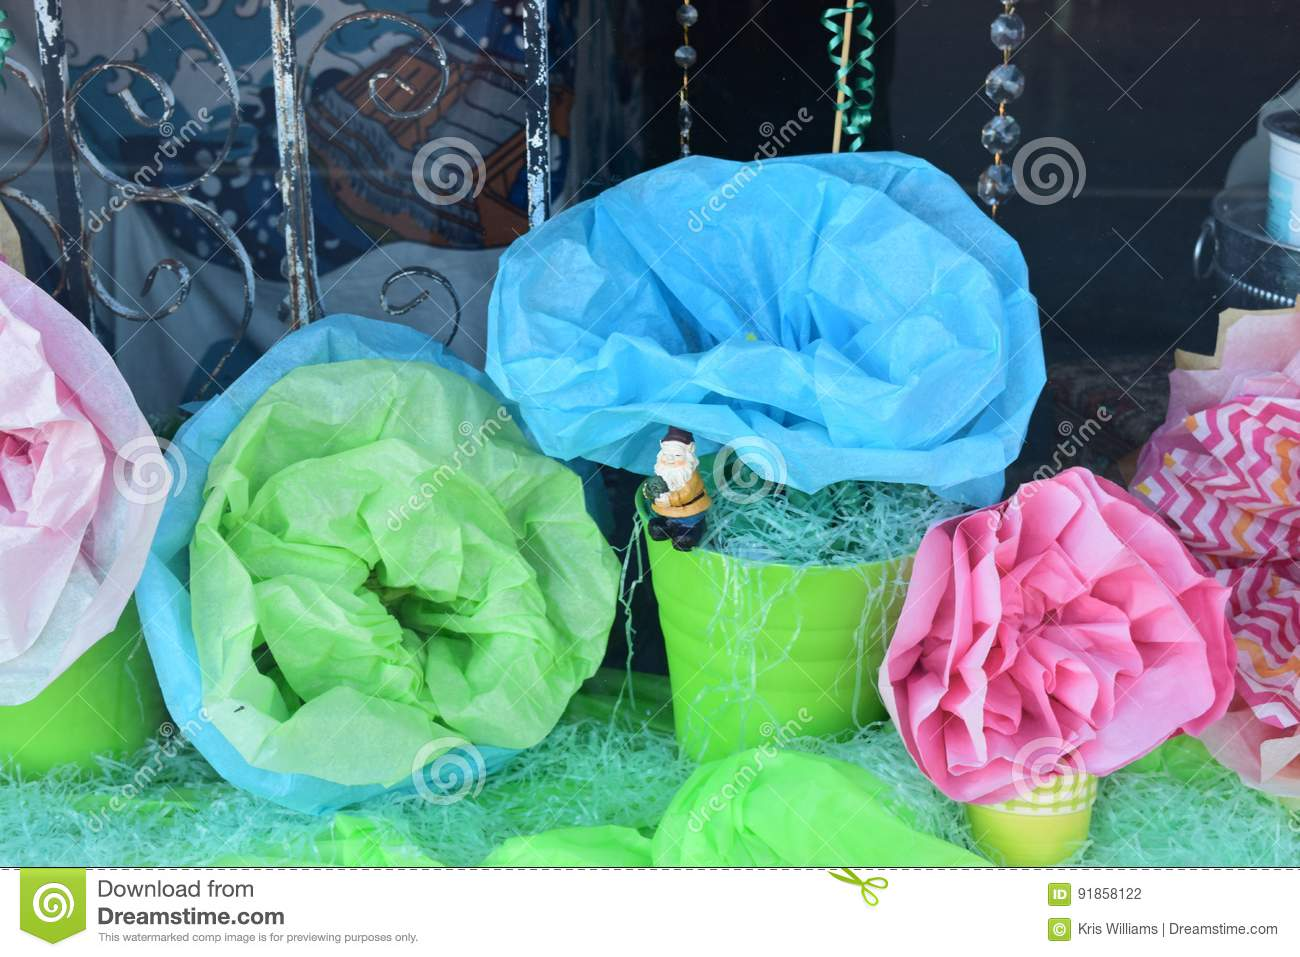 Crete paper flowers for spring display